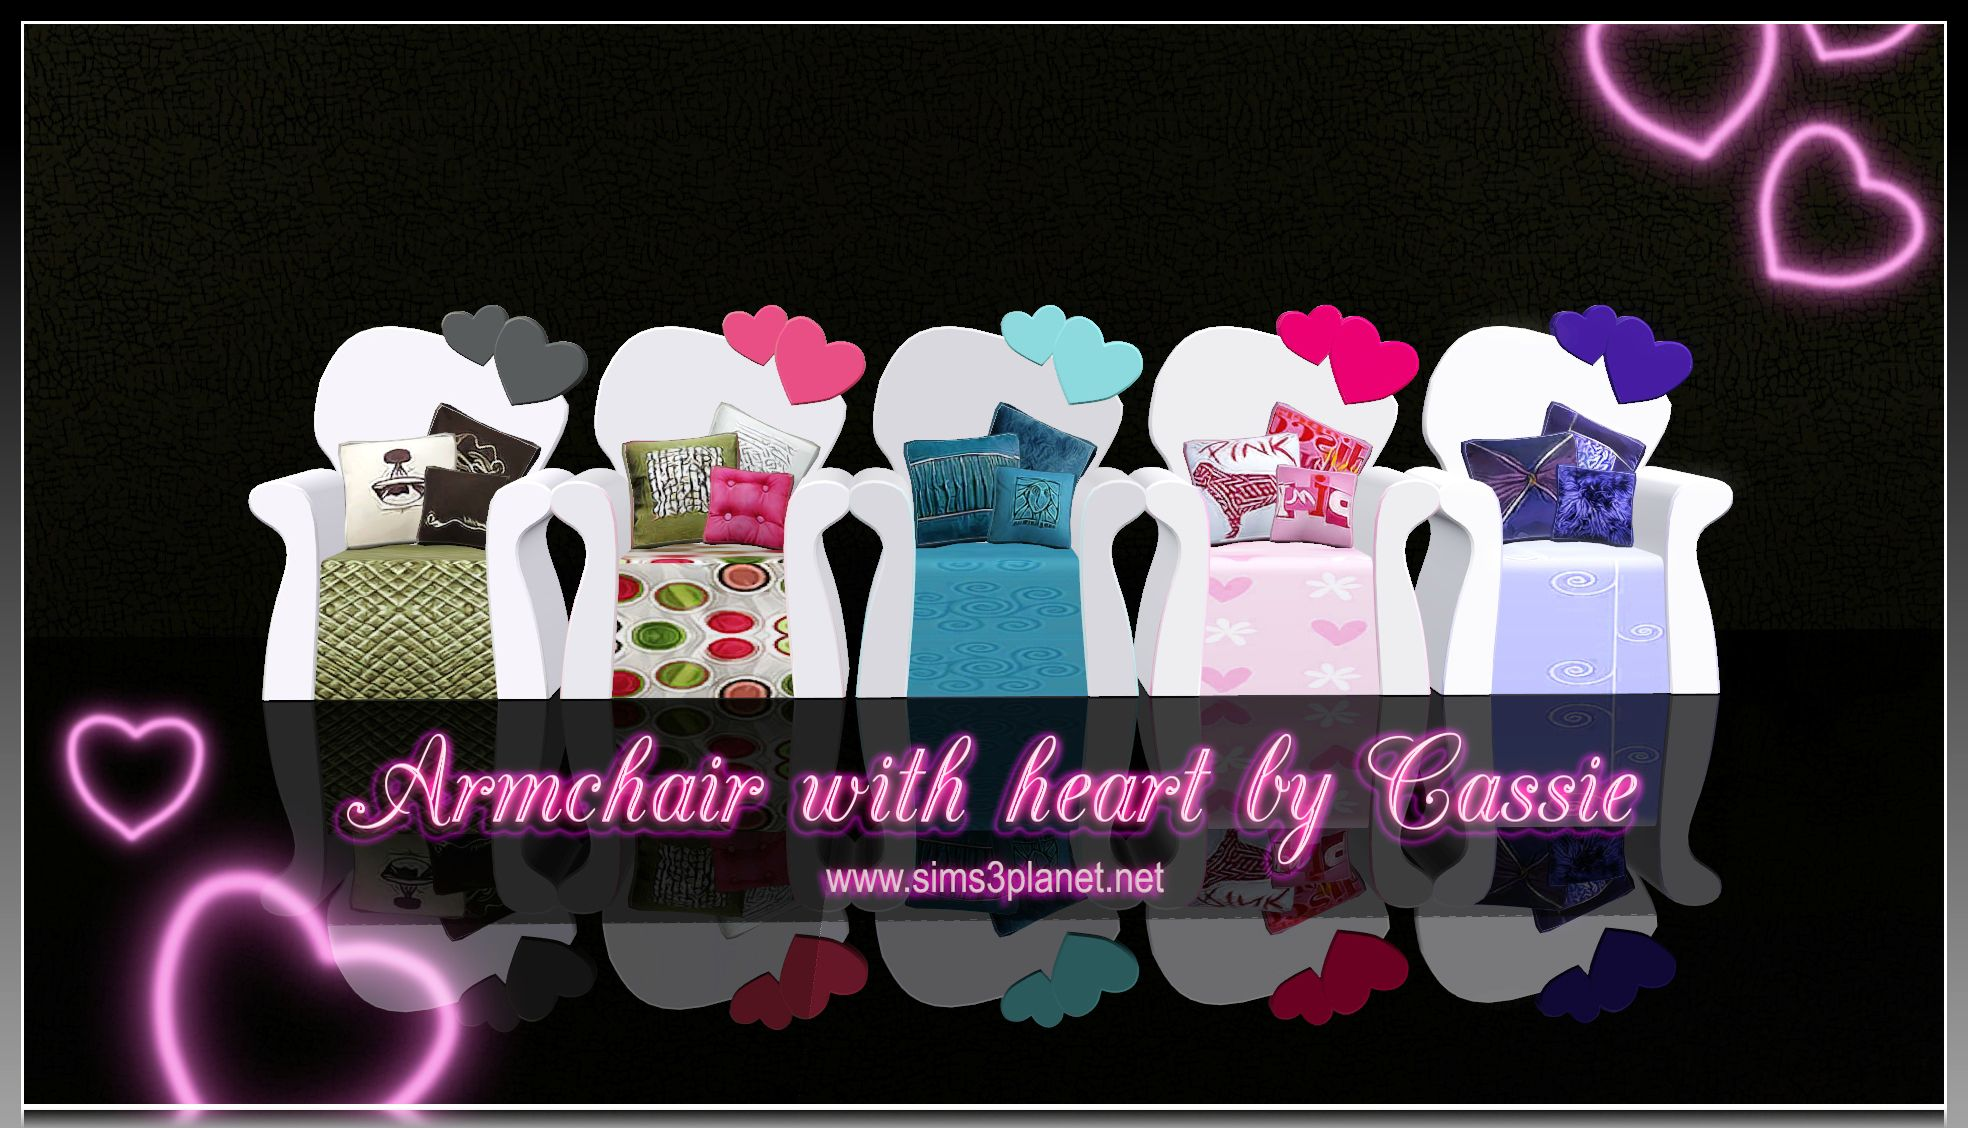 Armchair with heart by Cassie